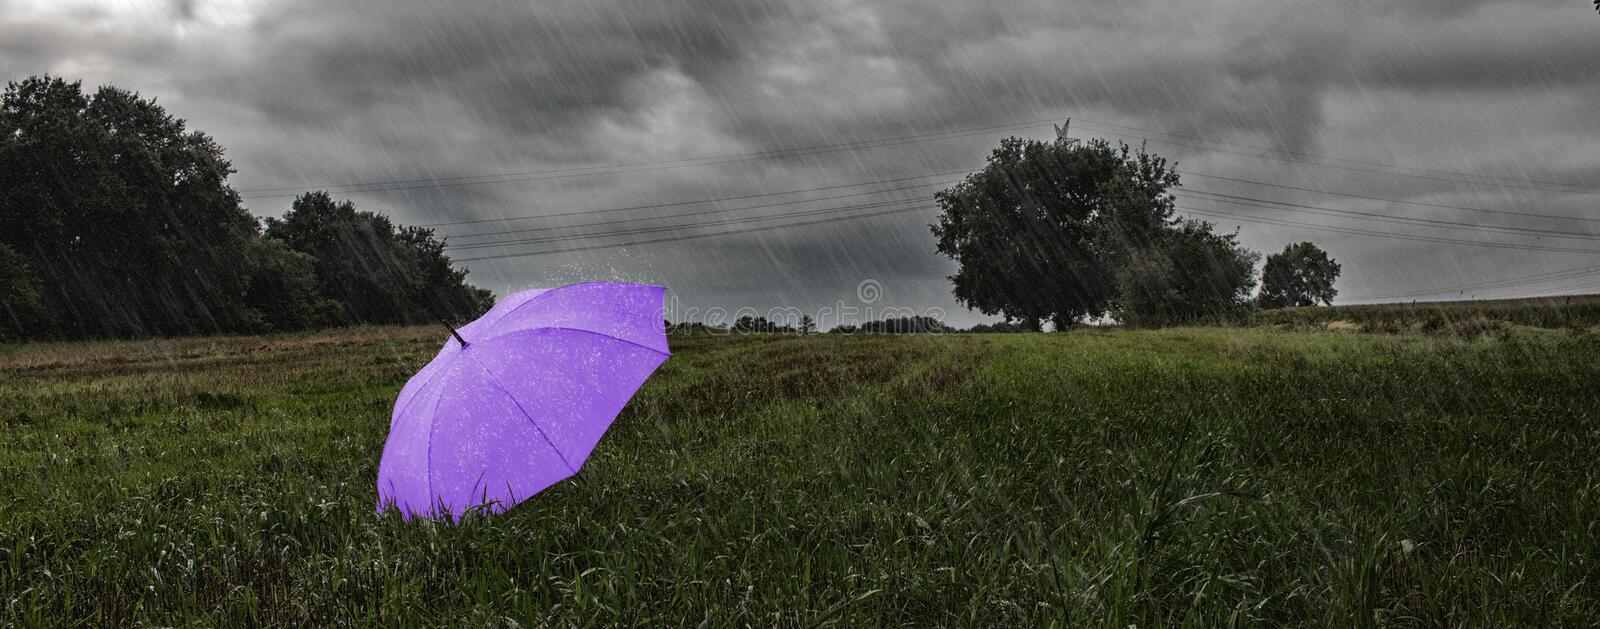 An umbrella royalty free stock photography